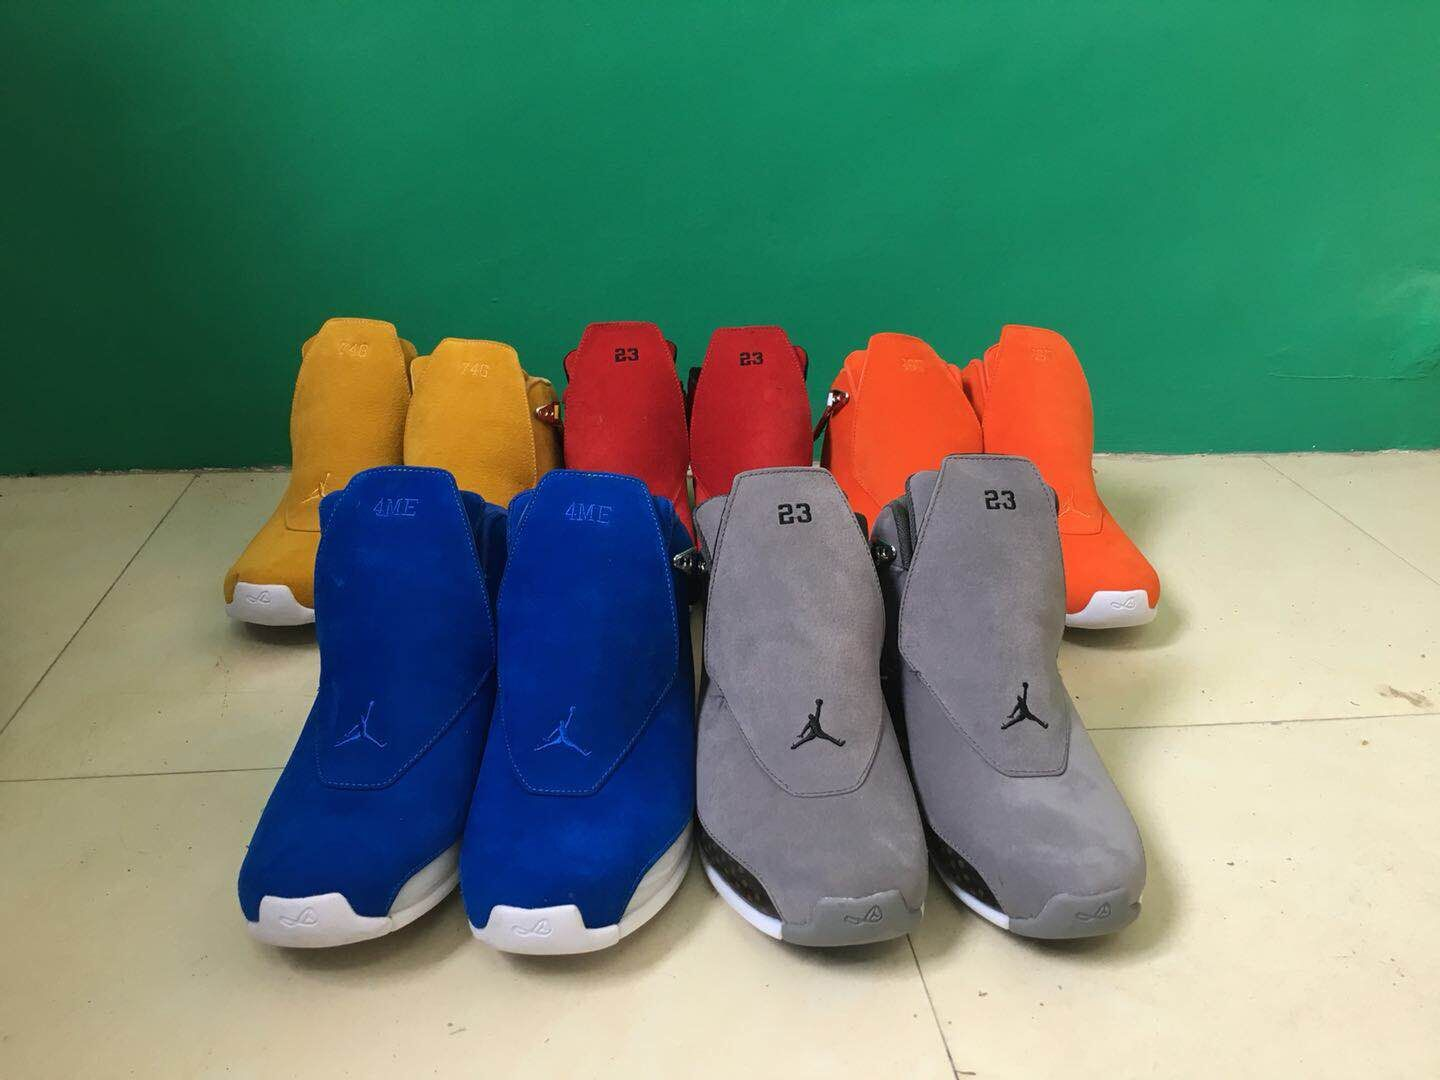 New Air Jordan 18 Retro Shoes